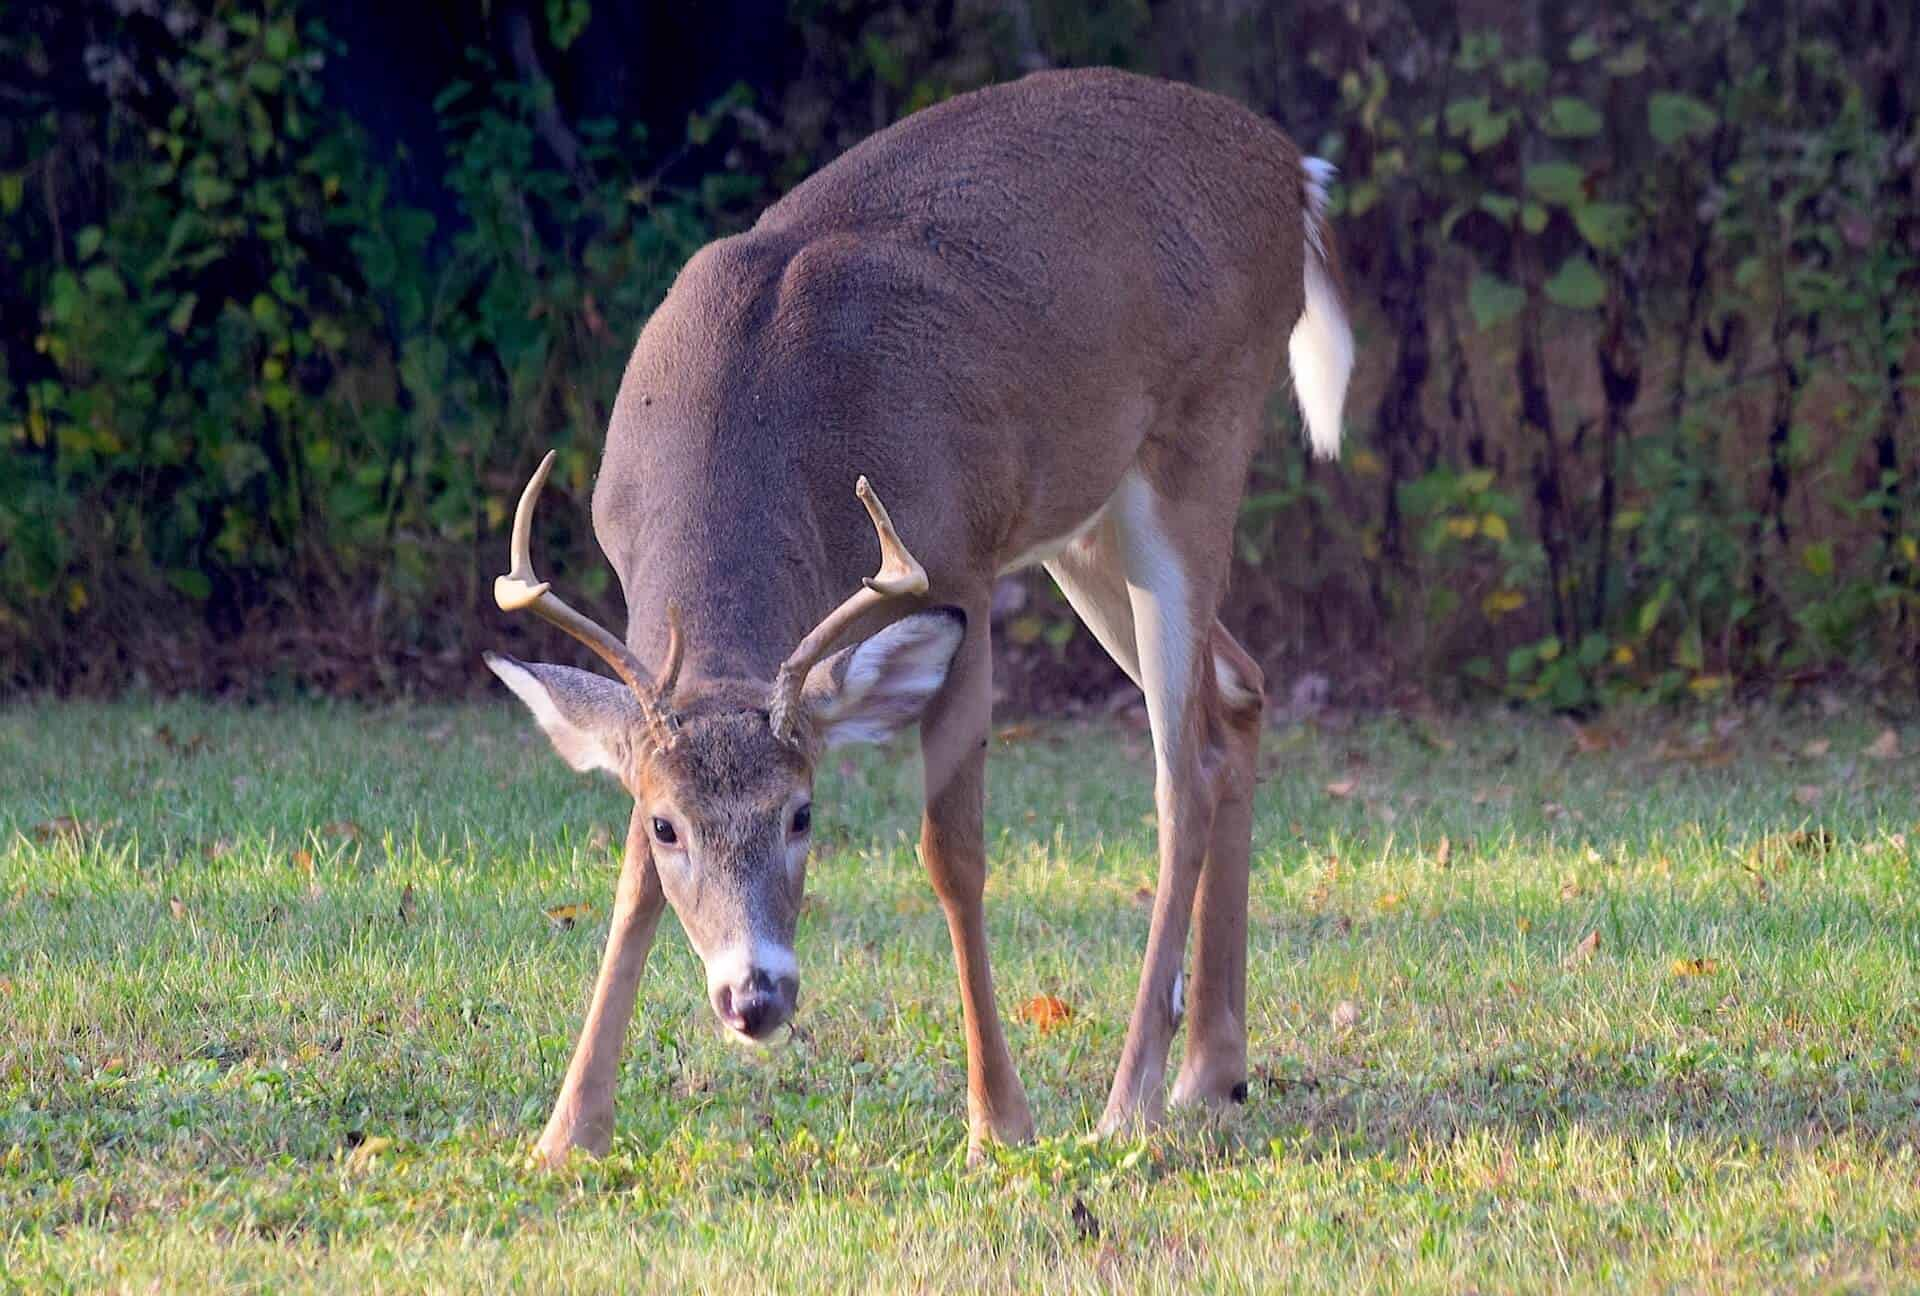 Deer grazing in a field of grass